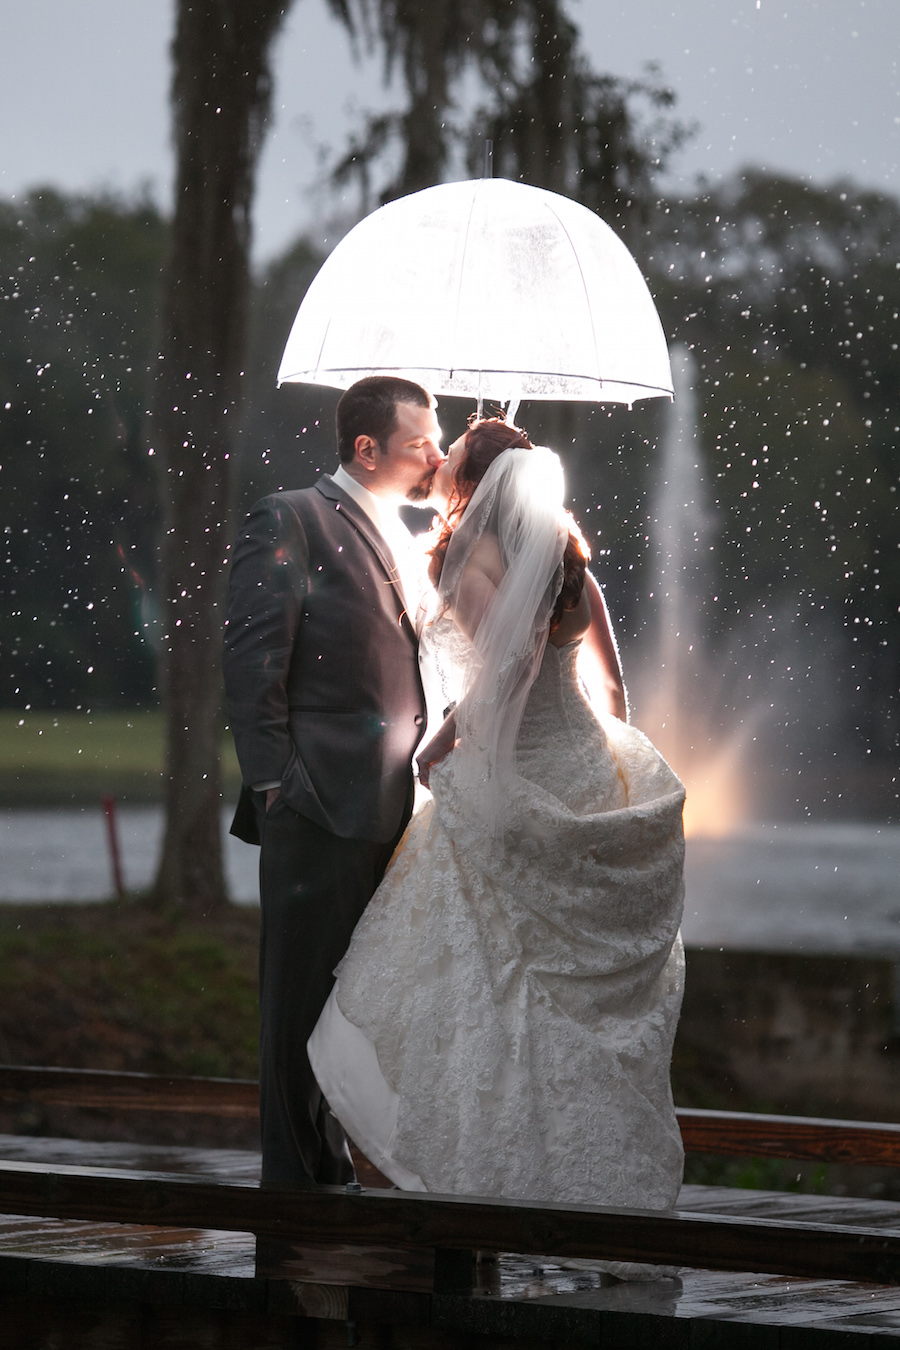 Bride and Groom Wedding Portrait in the Rain with Umbrella by Tampa Bay Wedding Photographer Carrie Wildes Photography